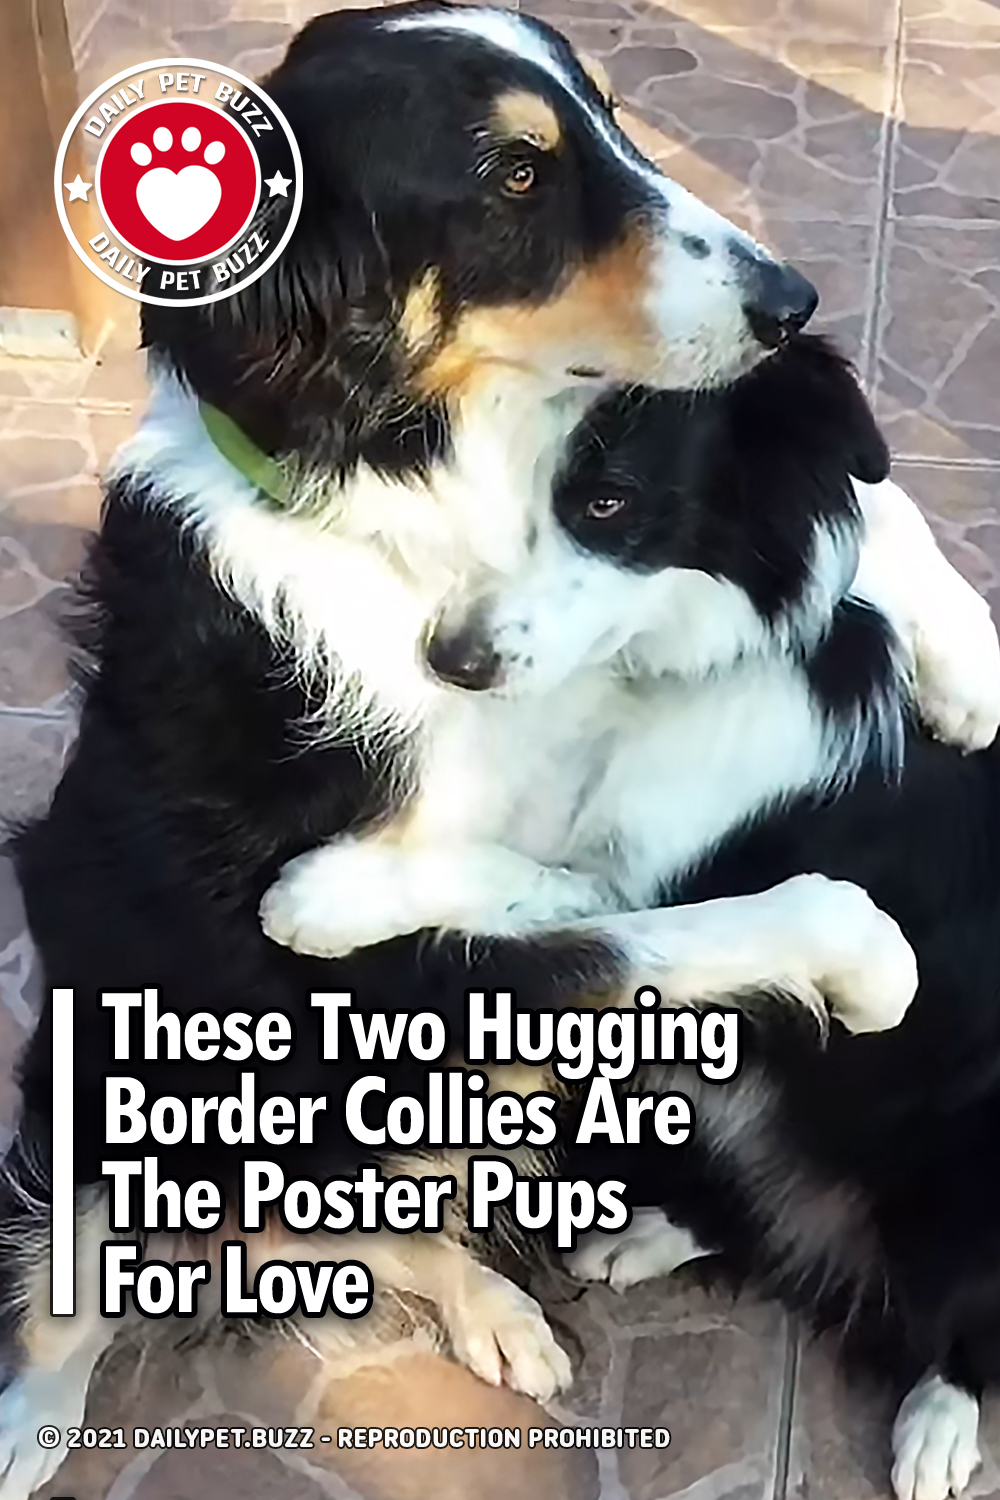 These Two Hugging Border Collies Are The Poster Pups For Love